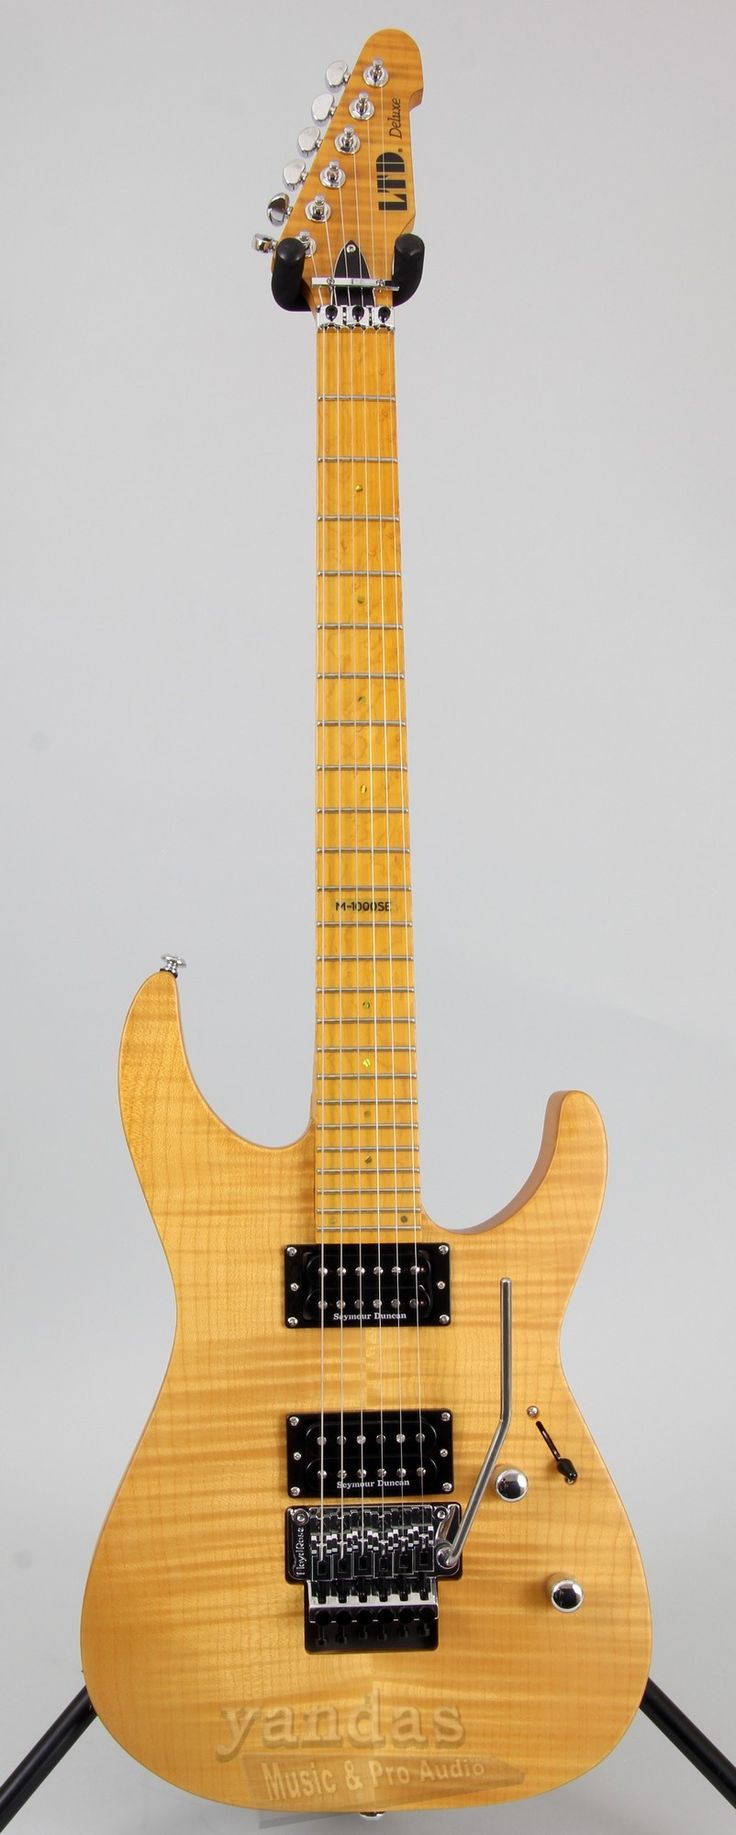 The M series electric guitars from LTD are world known for their sleek design, and great tonal capabilities. This new 2015 release of the M-1000SE features a solid flamed maple top with Seymour Duncan